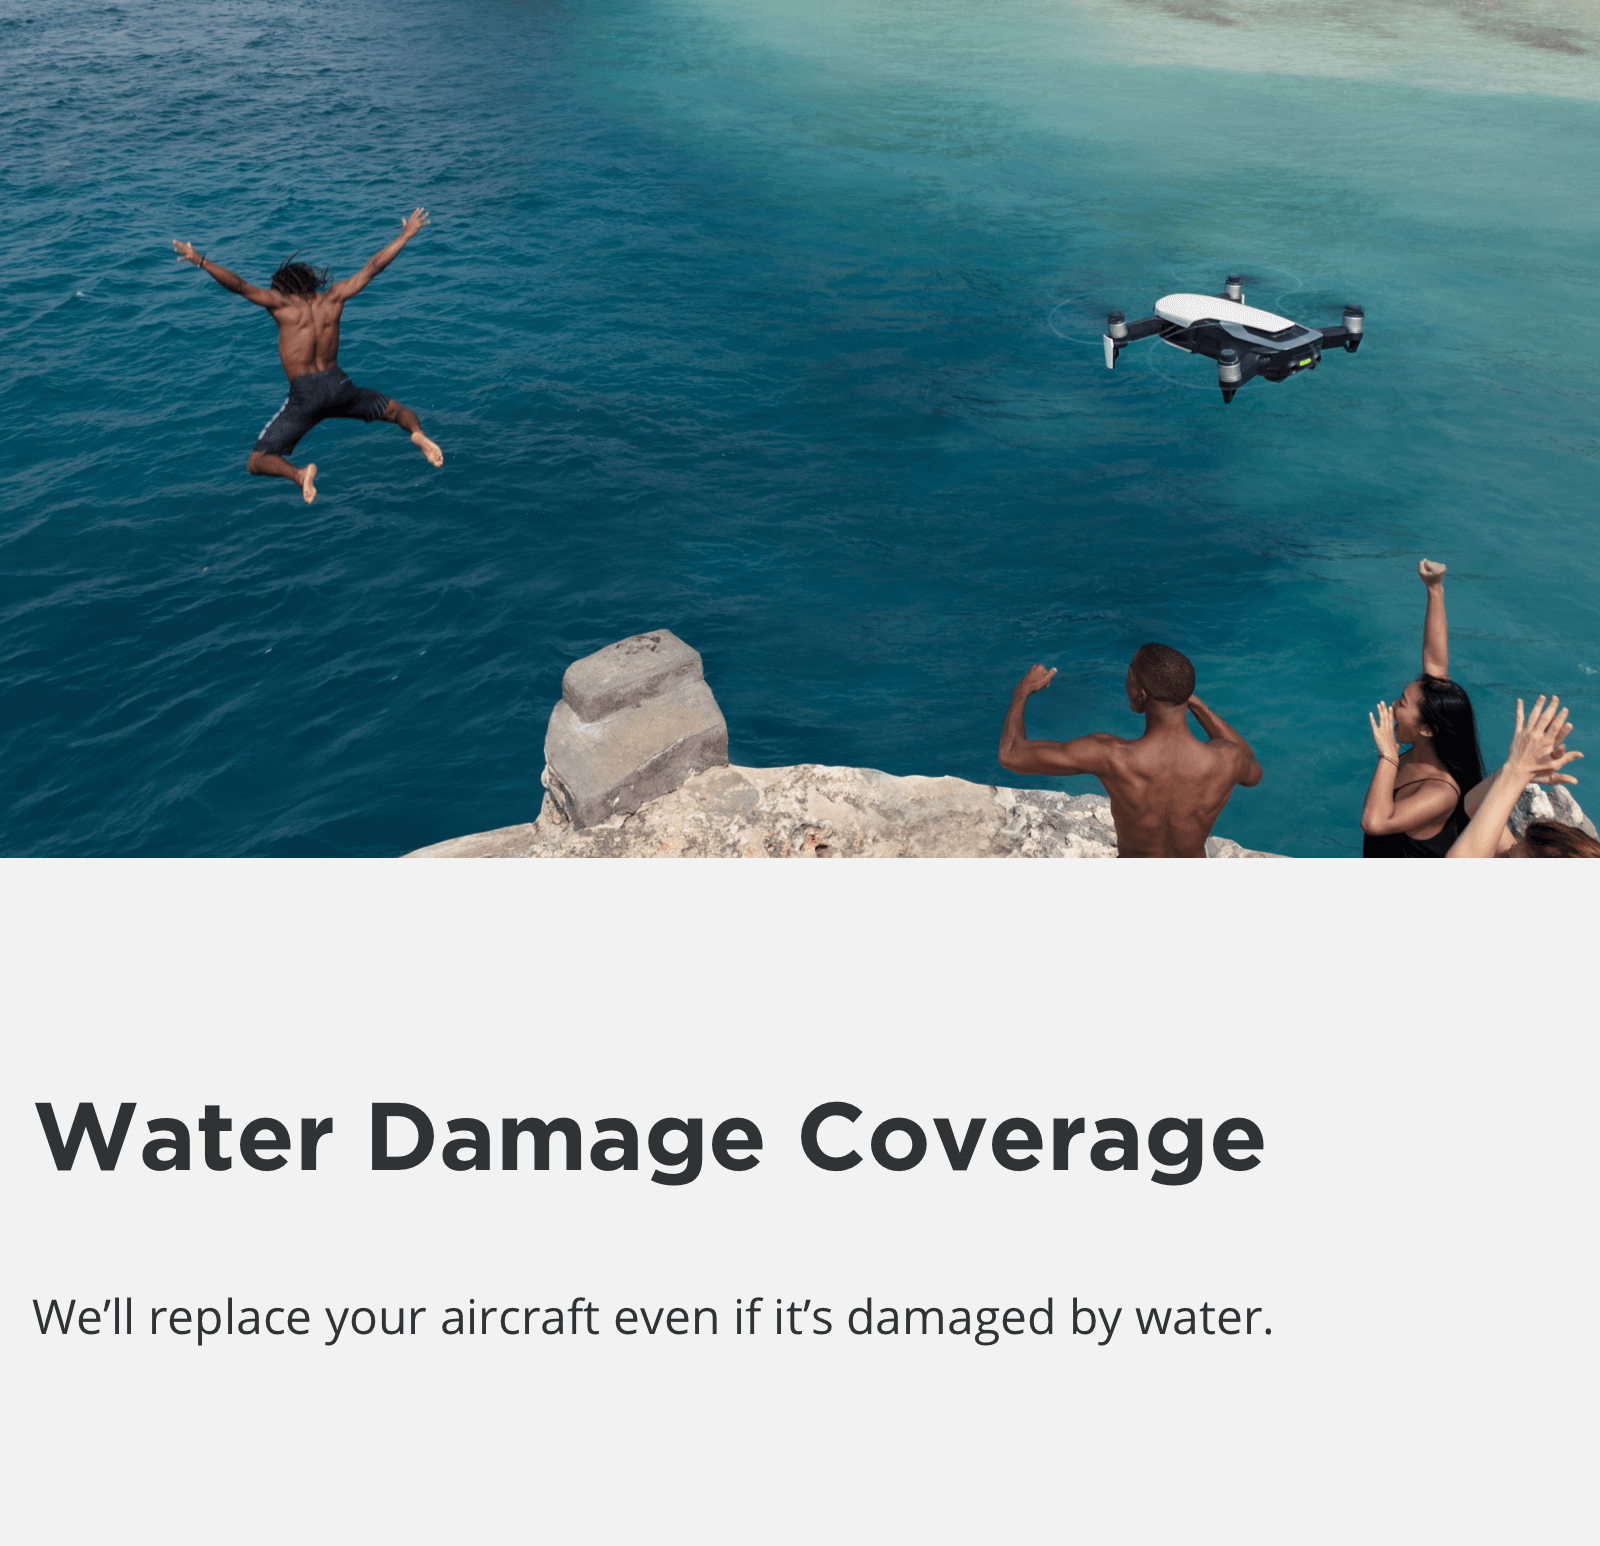 %u30107%u3011water%20damage%20coverage-en%202.png